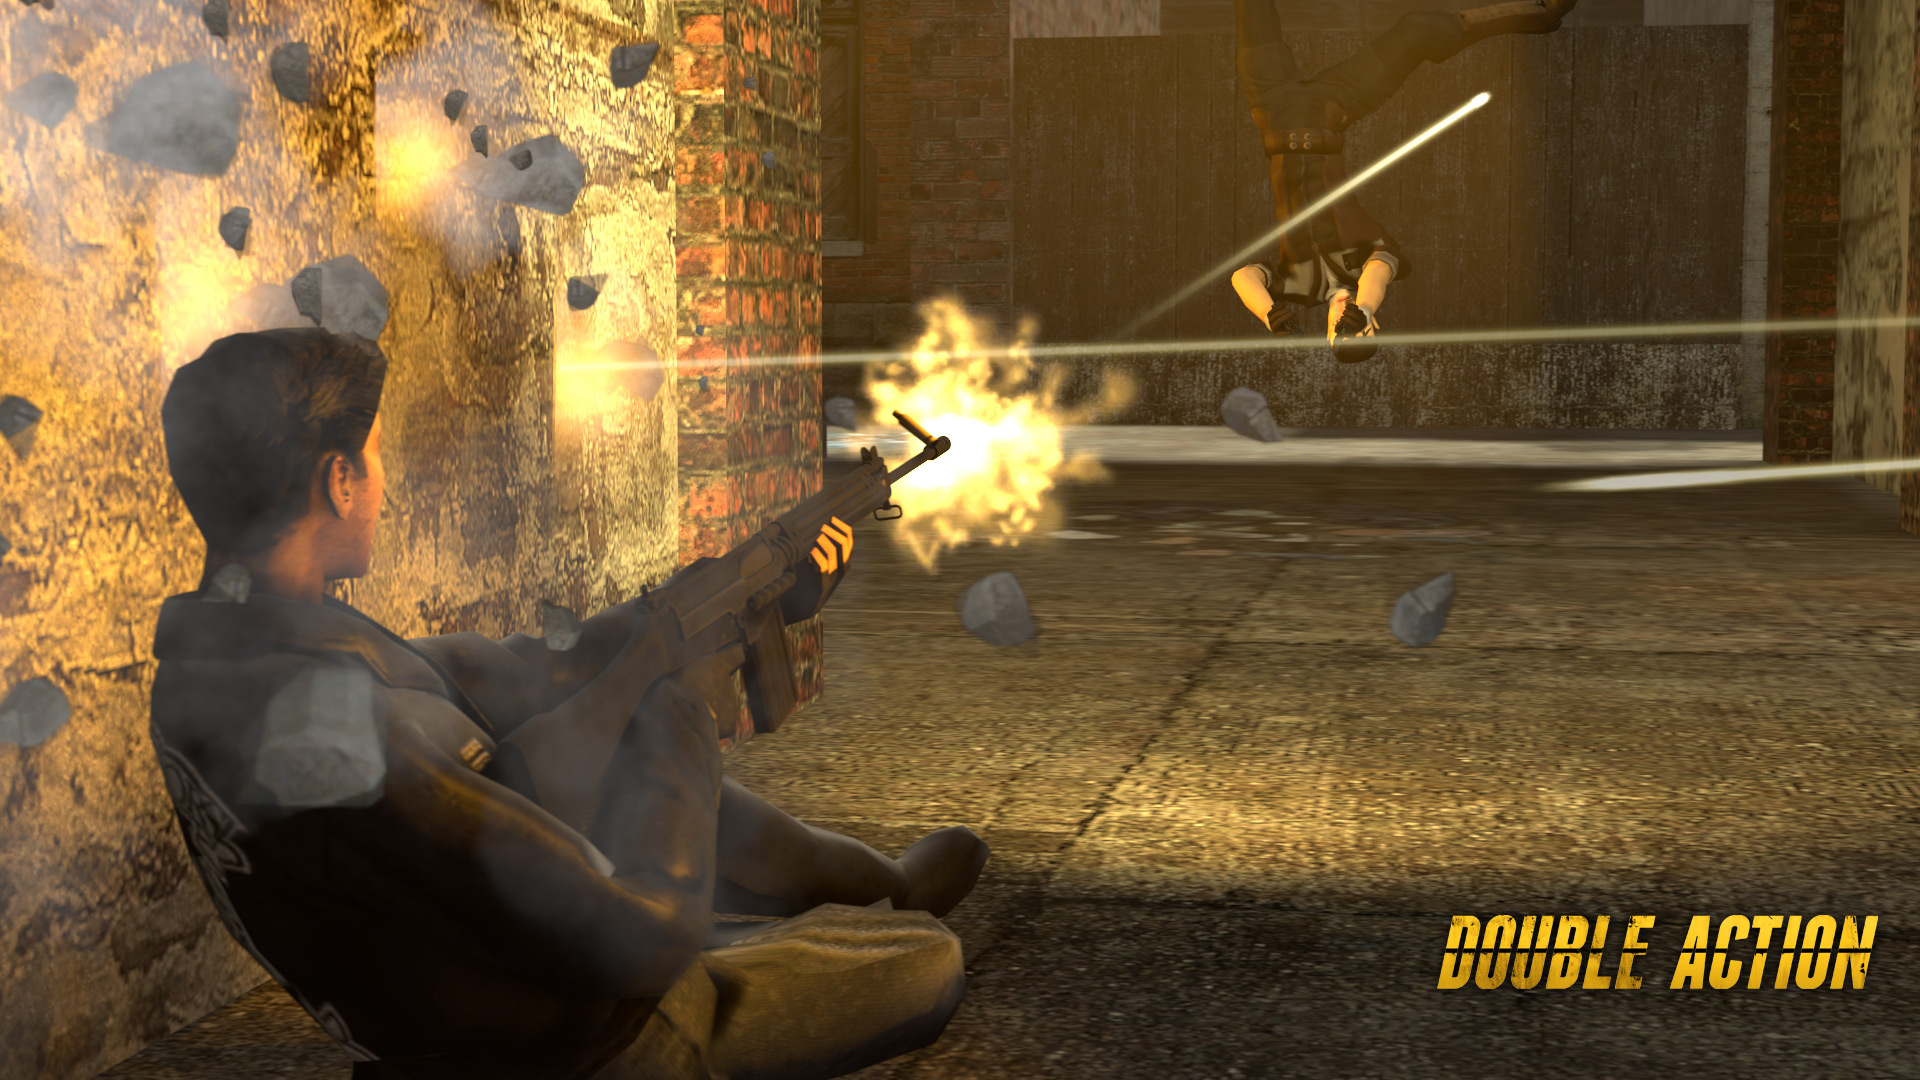 Download Double Action Boogaloo Full PC Game